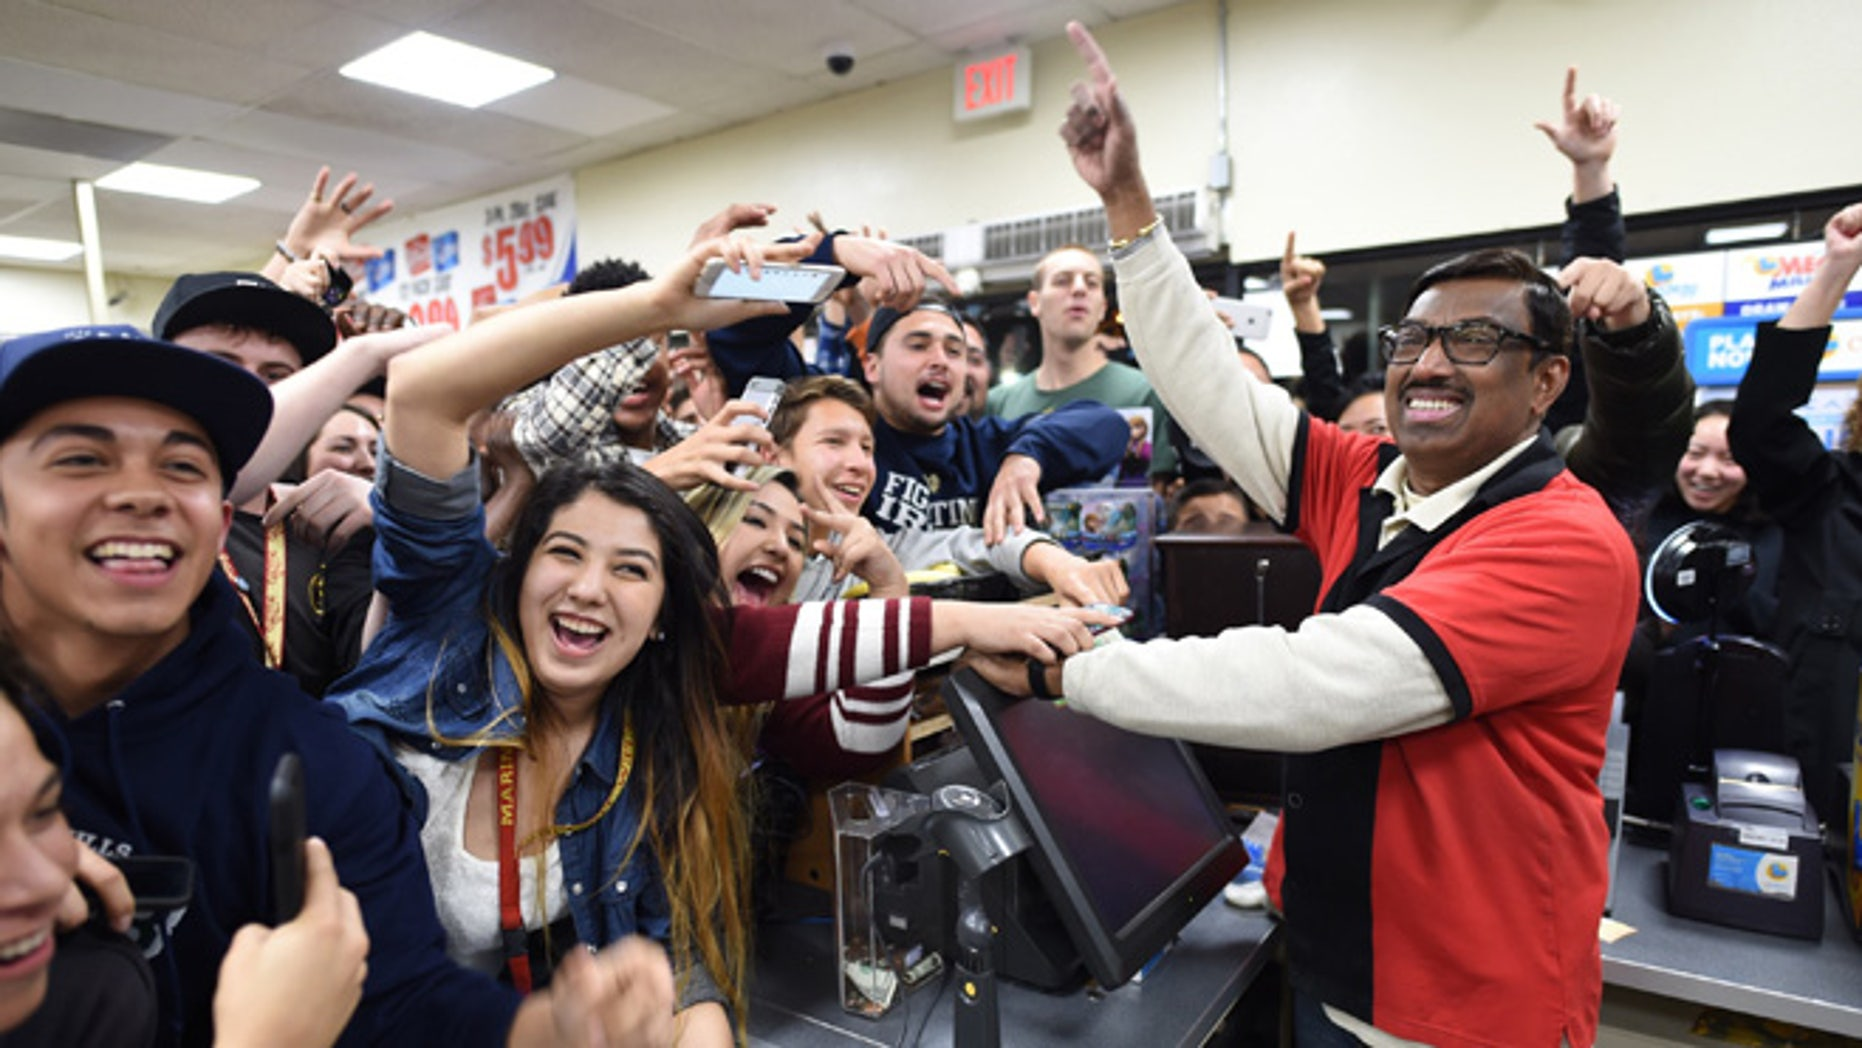 FILE -This Jan. 13, 2016 file photo shows 7-Eleven store clerk M. Faroqui celebrates with customers after learning the store sold a winning Powerball ticket in Chino Hills, Calif. The California lottery said Tuesday, July 19, 2016, a couple, Marvin and Mae Acosta, have claimed a $528.8 million share of a record record $1.6 billion Powerball jackpot in January. (Will Lester/The Sun via AP, File) MANDATORY CREDIT